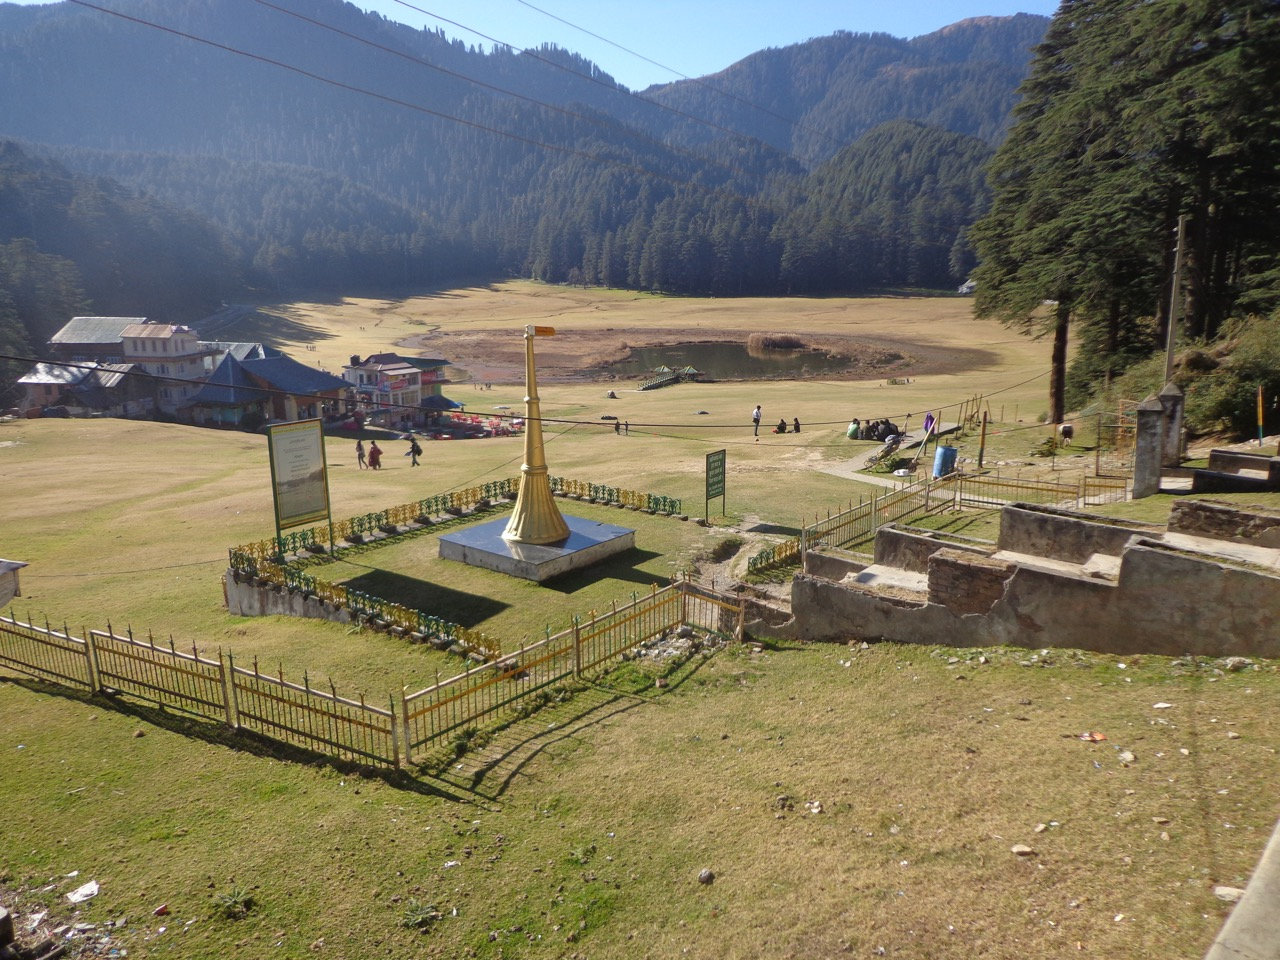 The Khajjiar field and the lake. There are a few shops on the left that serves refreshments.